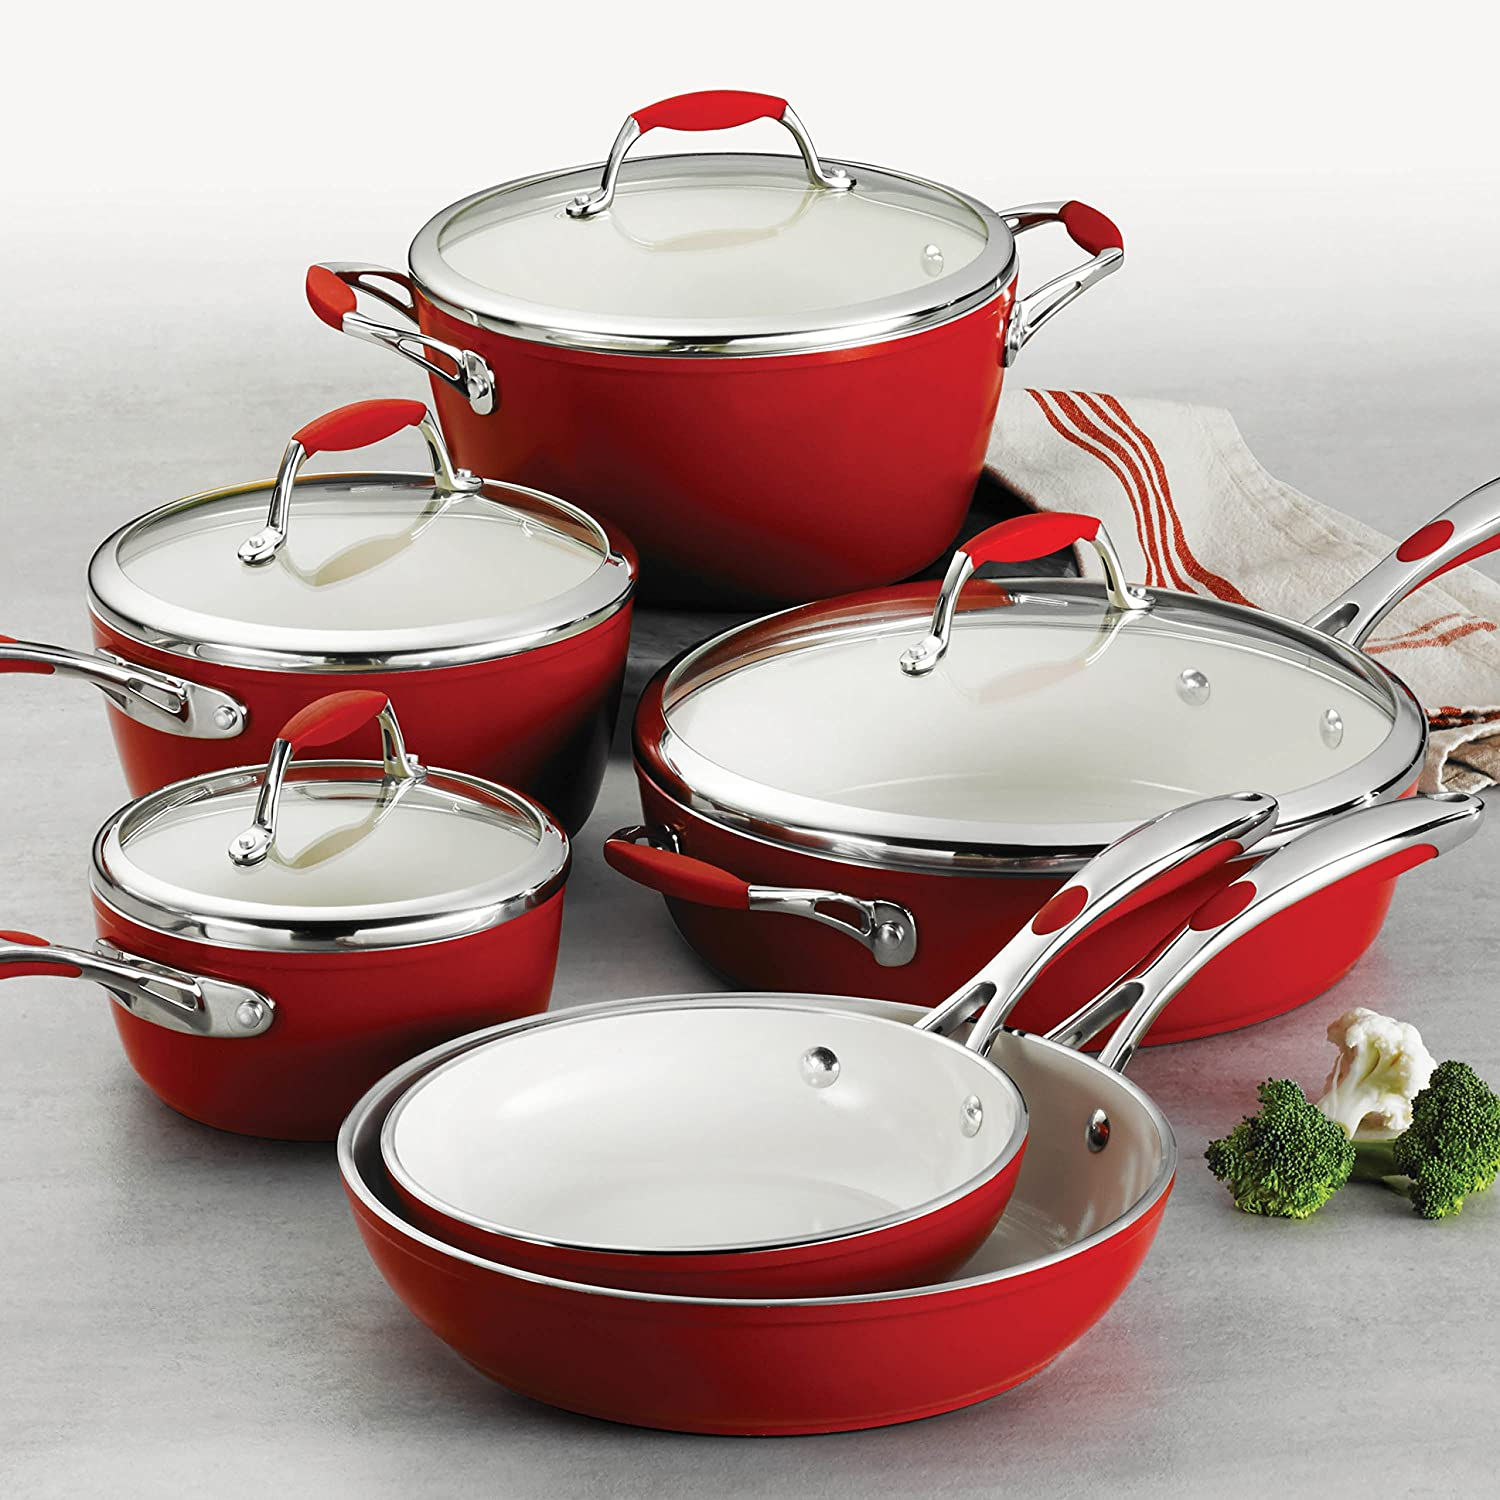 Tramontina 80110 202DS Gourmet Ceramica Deluxe Cookware Set, PFOA- PTFE- Lead and Cadmium-Free Ceramic Exterior Interior, 10-Piece, Metallic Red, Made in Italy